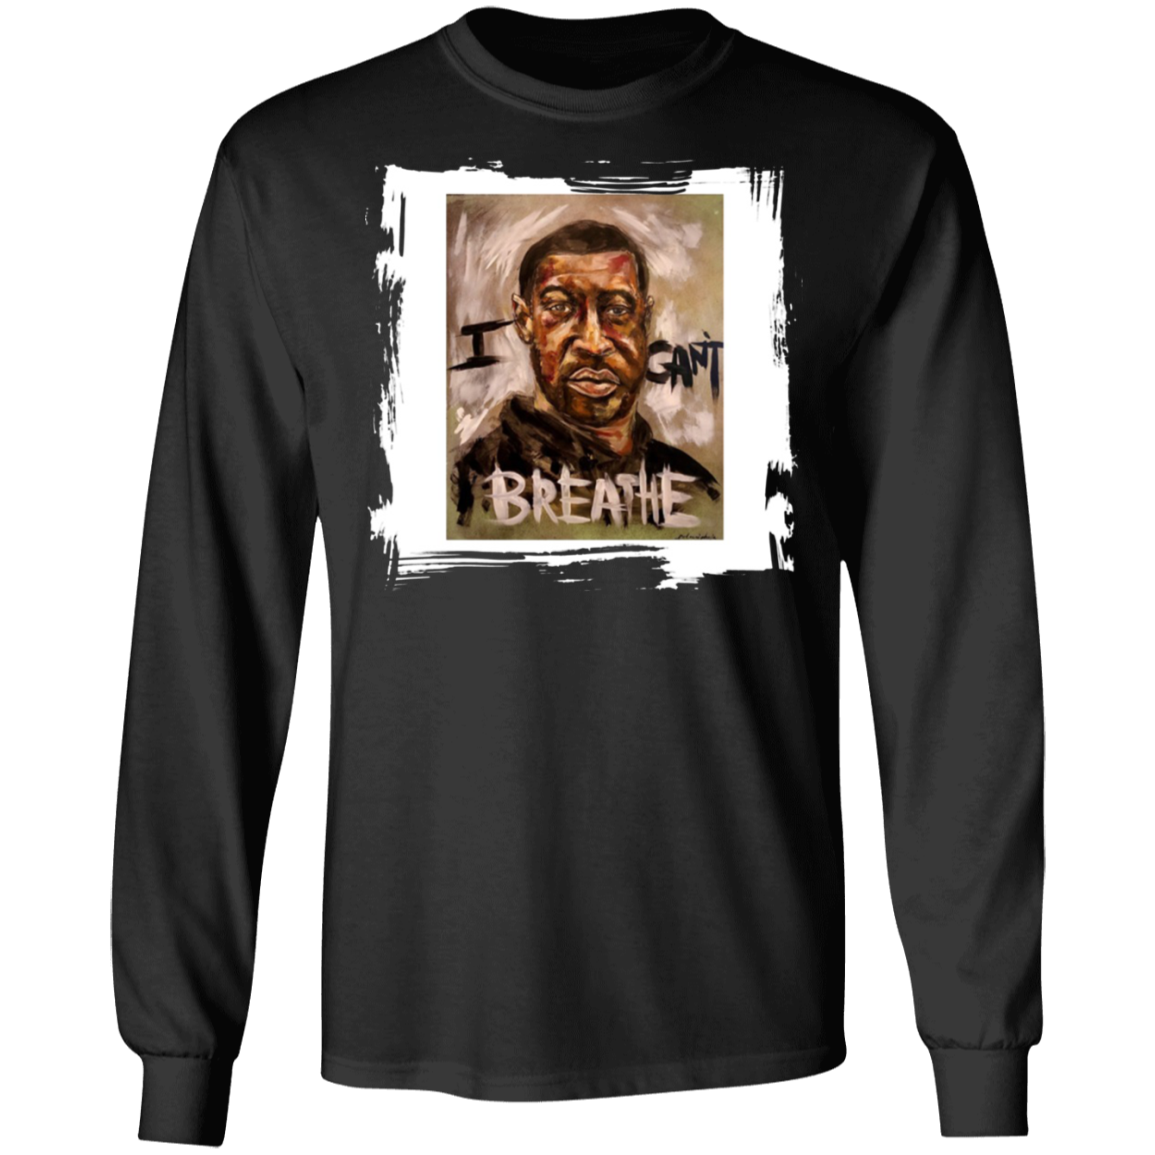 George Floyd Sweatshirt Black Lives Matter Shirt Donation